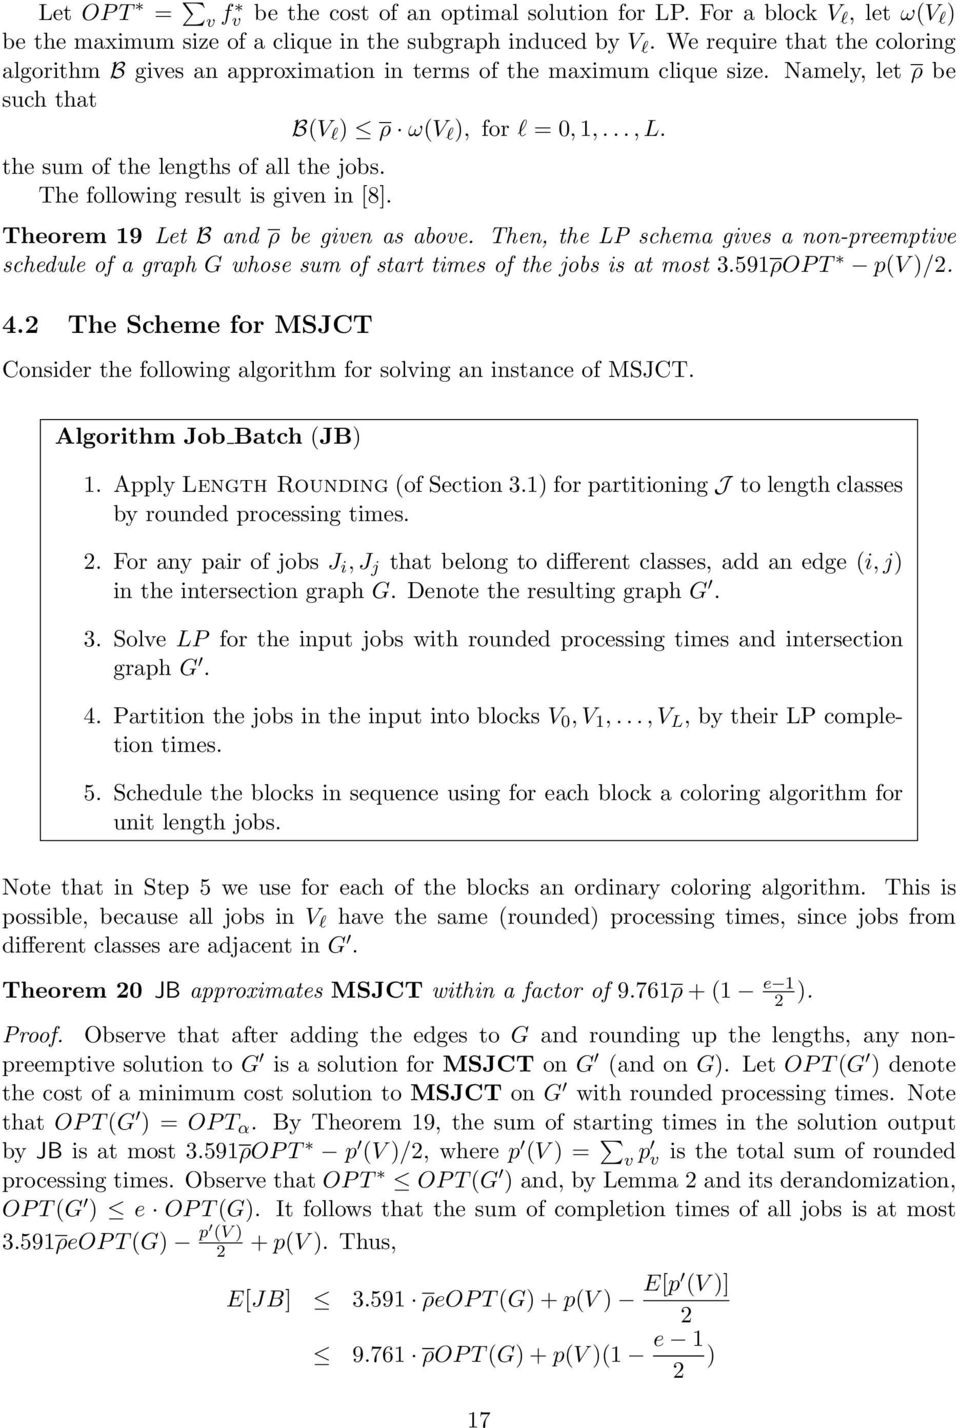 the sum of the lengths of all the jobs. The following result is given in [8]. Theorem 19 Let B and ρ be given as above.